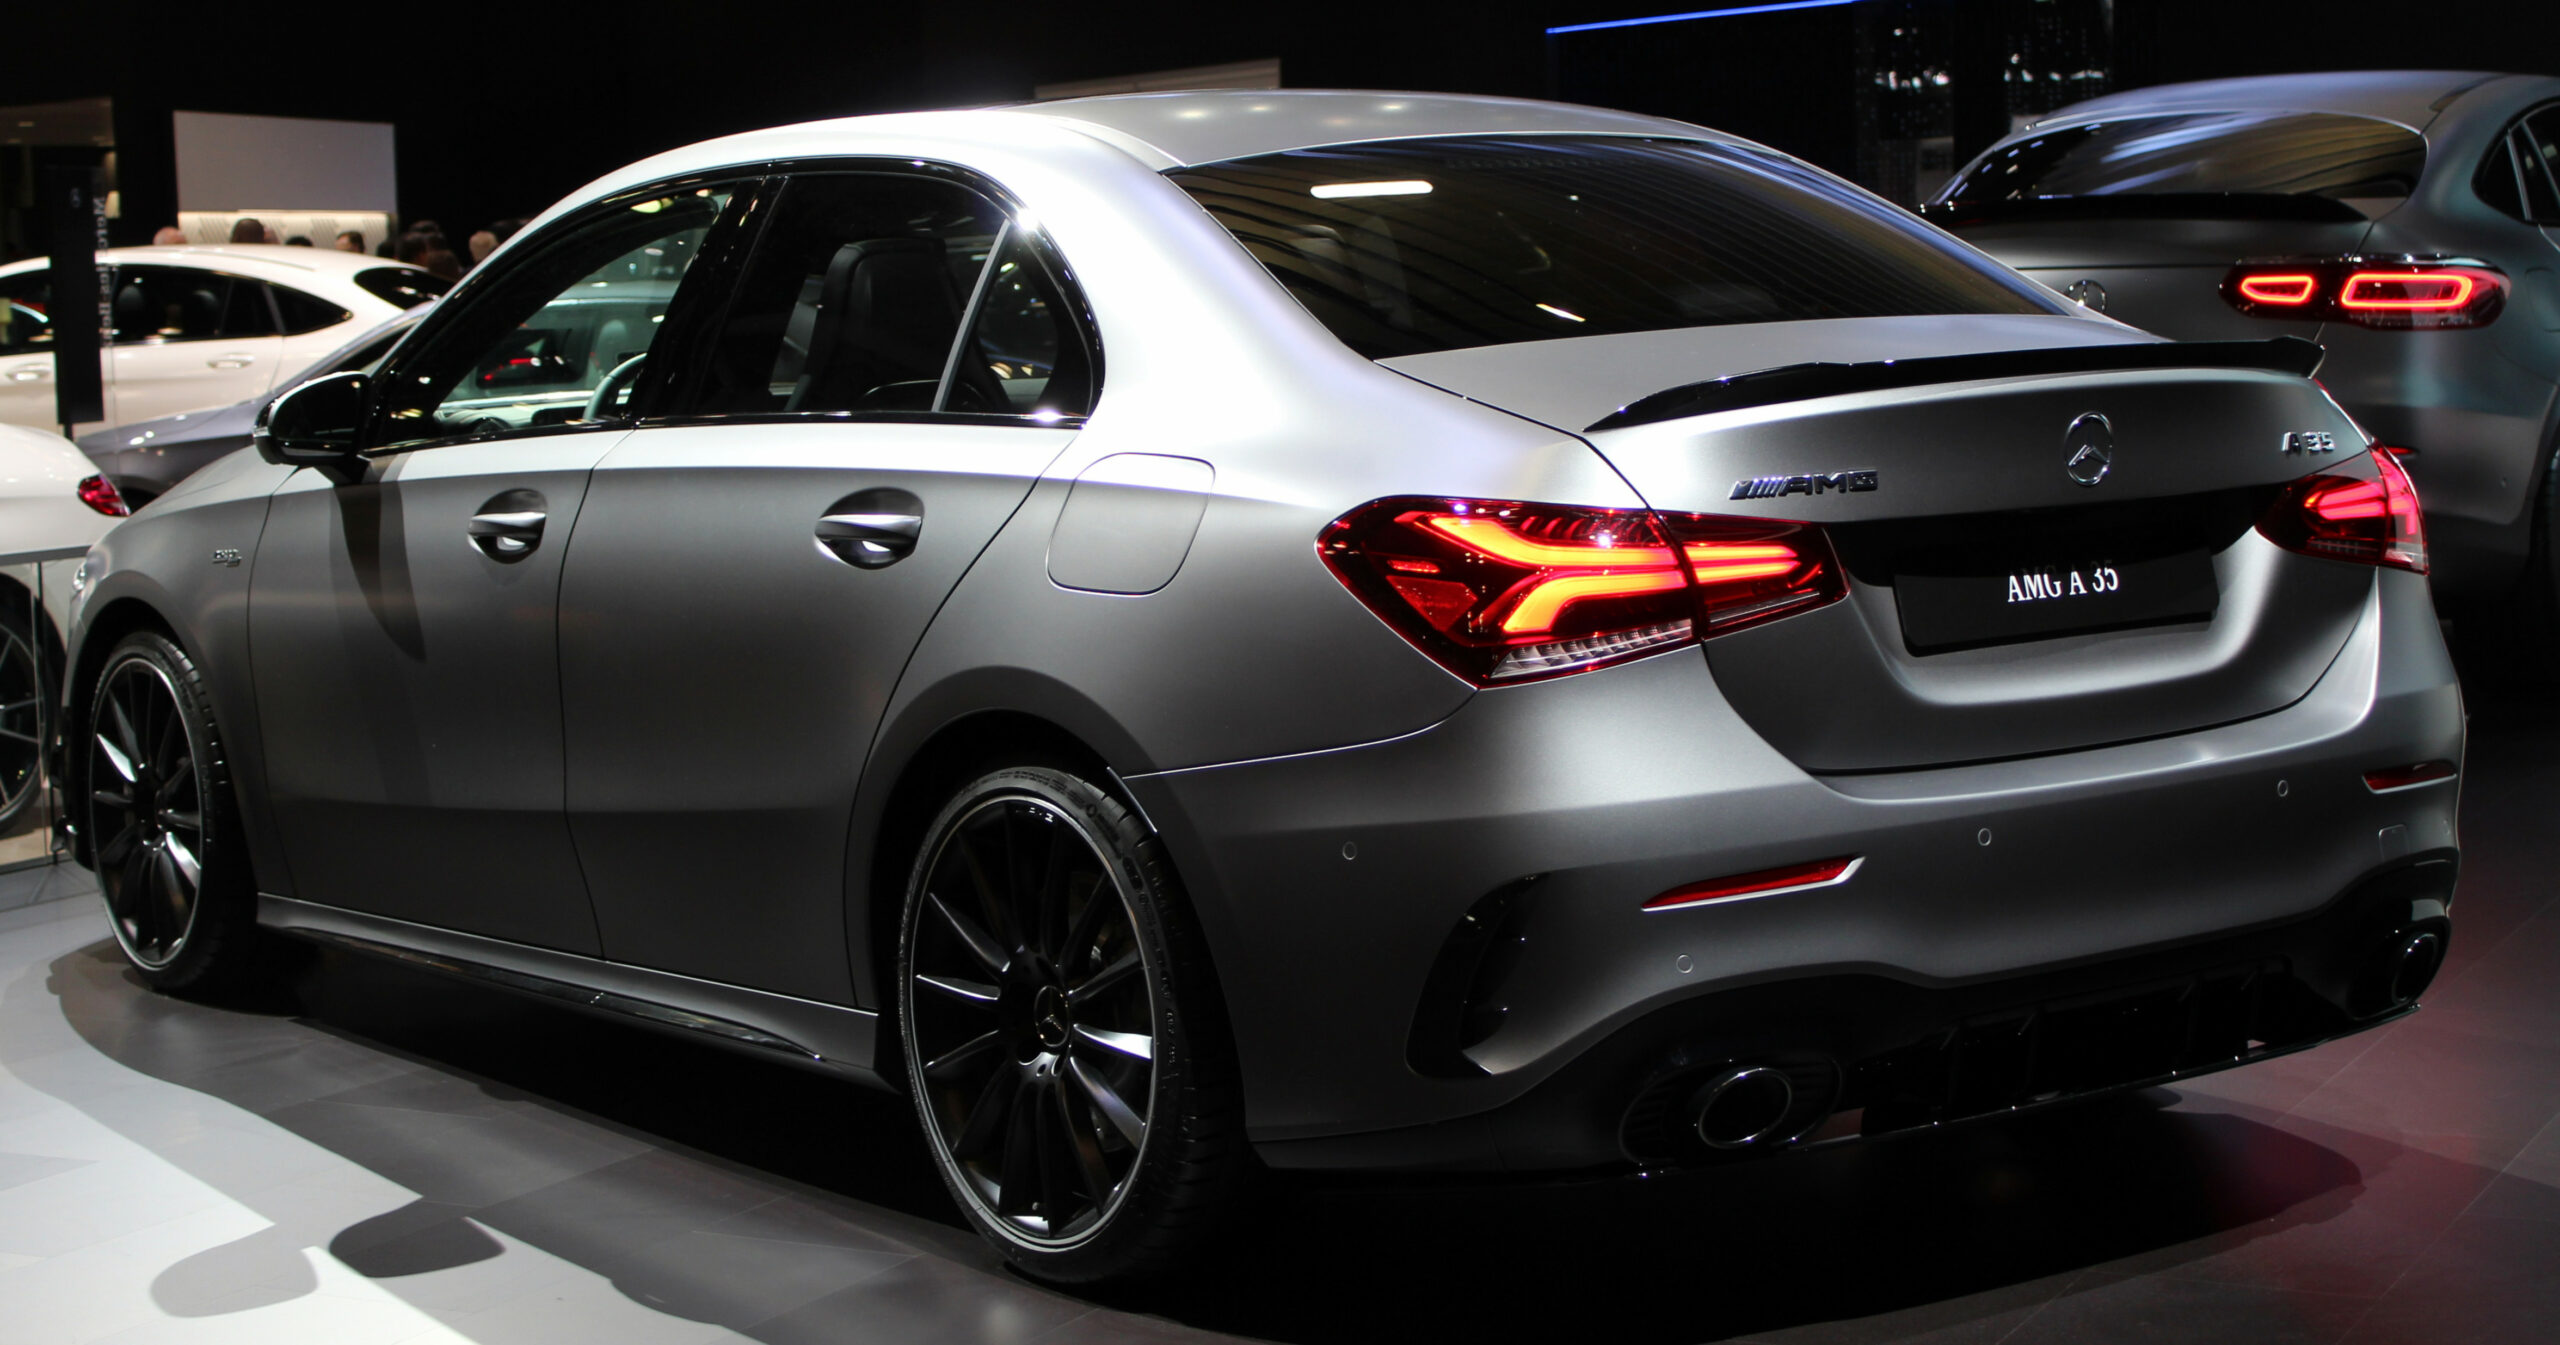 Datei:9 Mercedes-AMG A 9 9Matic sedan rear NYIAS 9.jpg ..